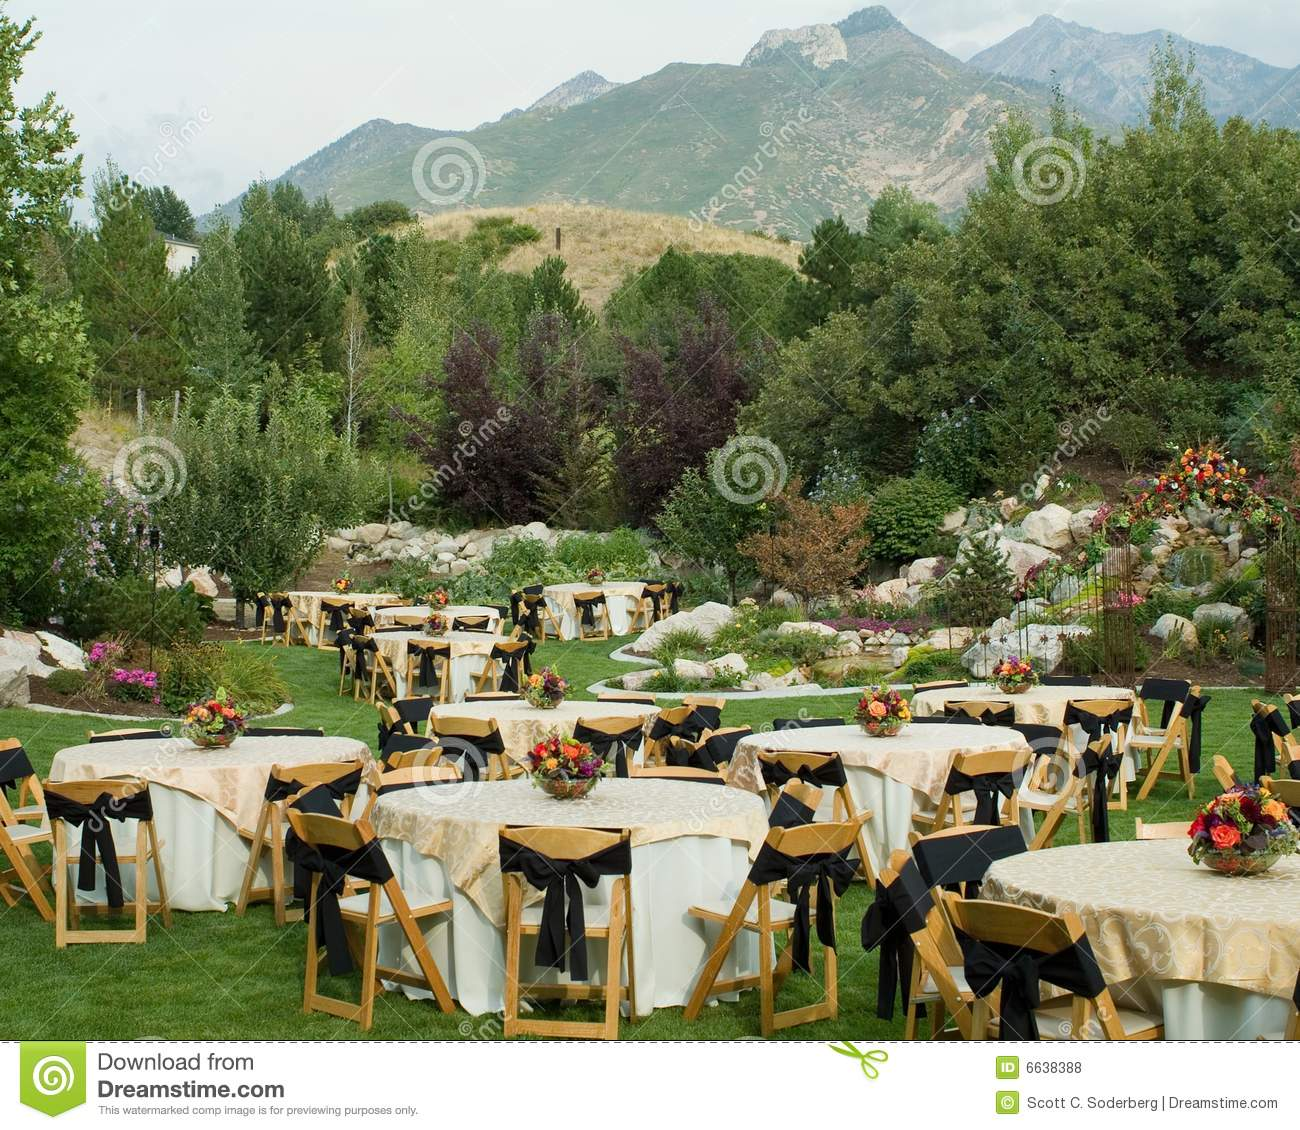 Outdoor Event Clipart.